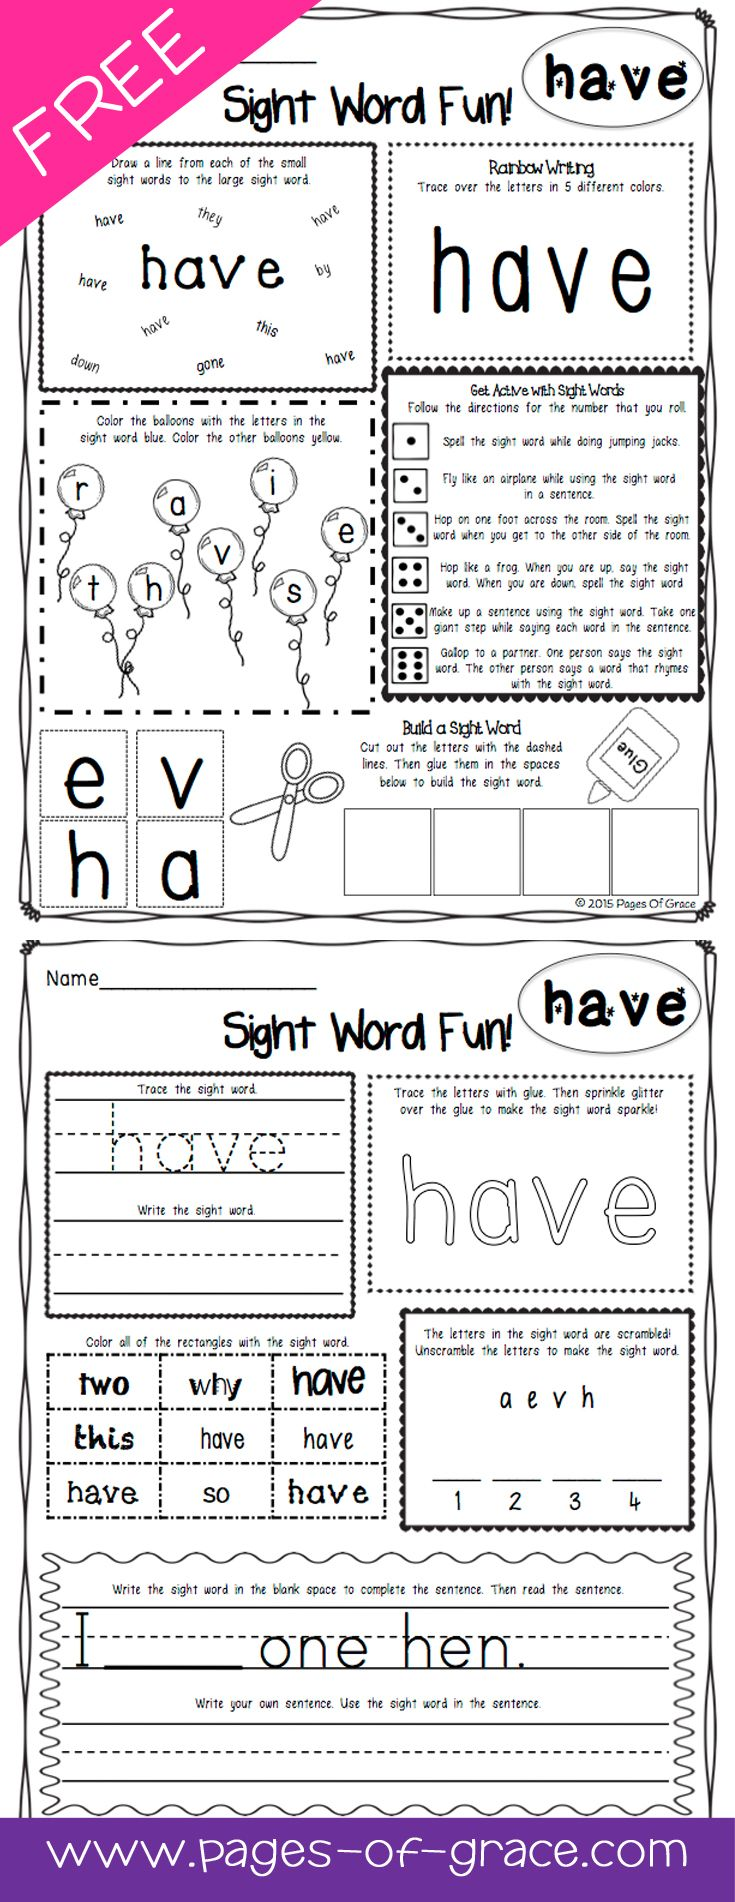 Are you looking for some fun ideas and activities for teaching sight words? This FREE packet has